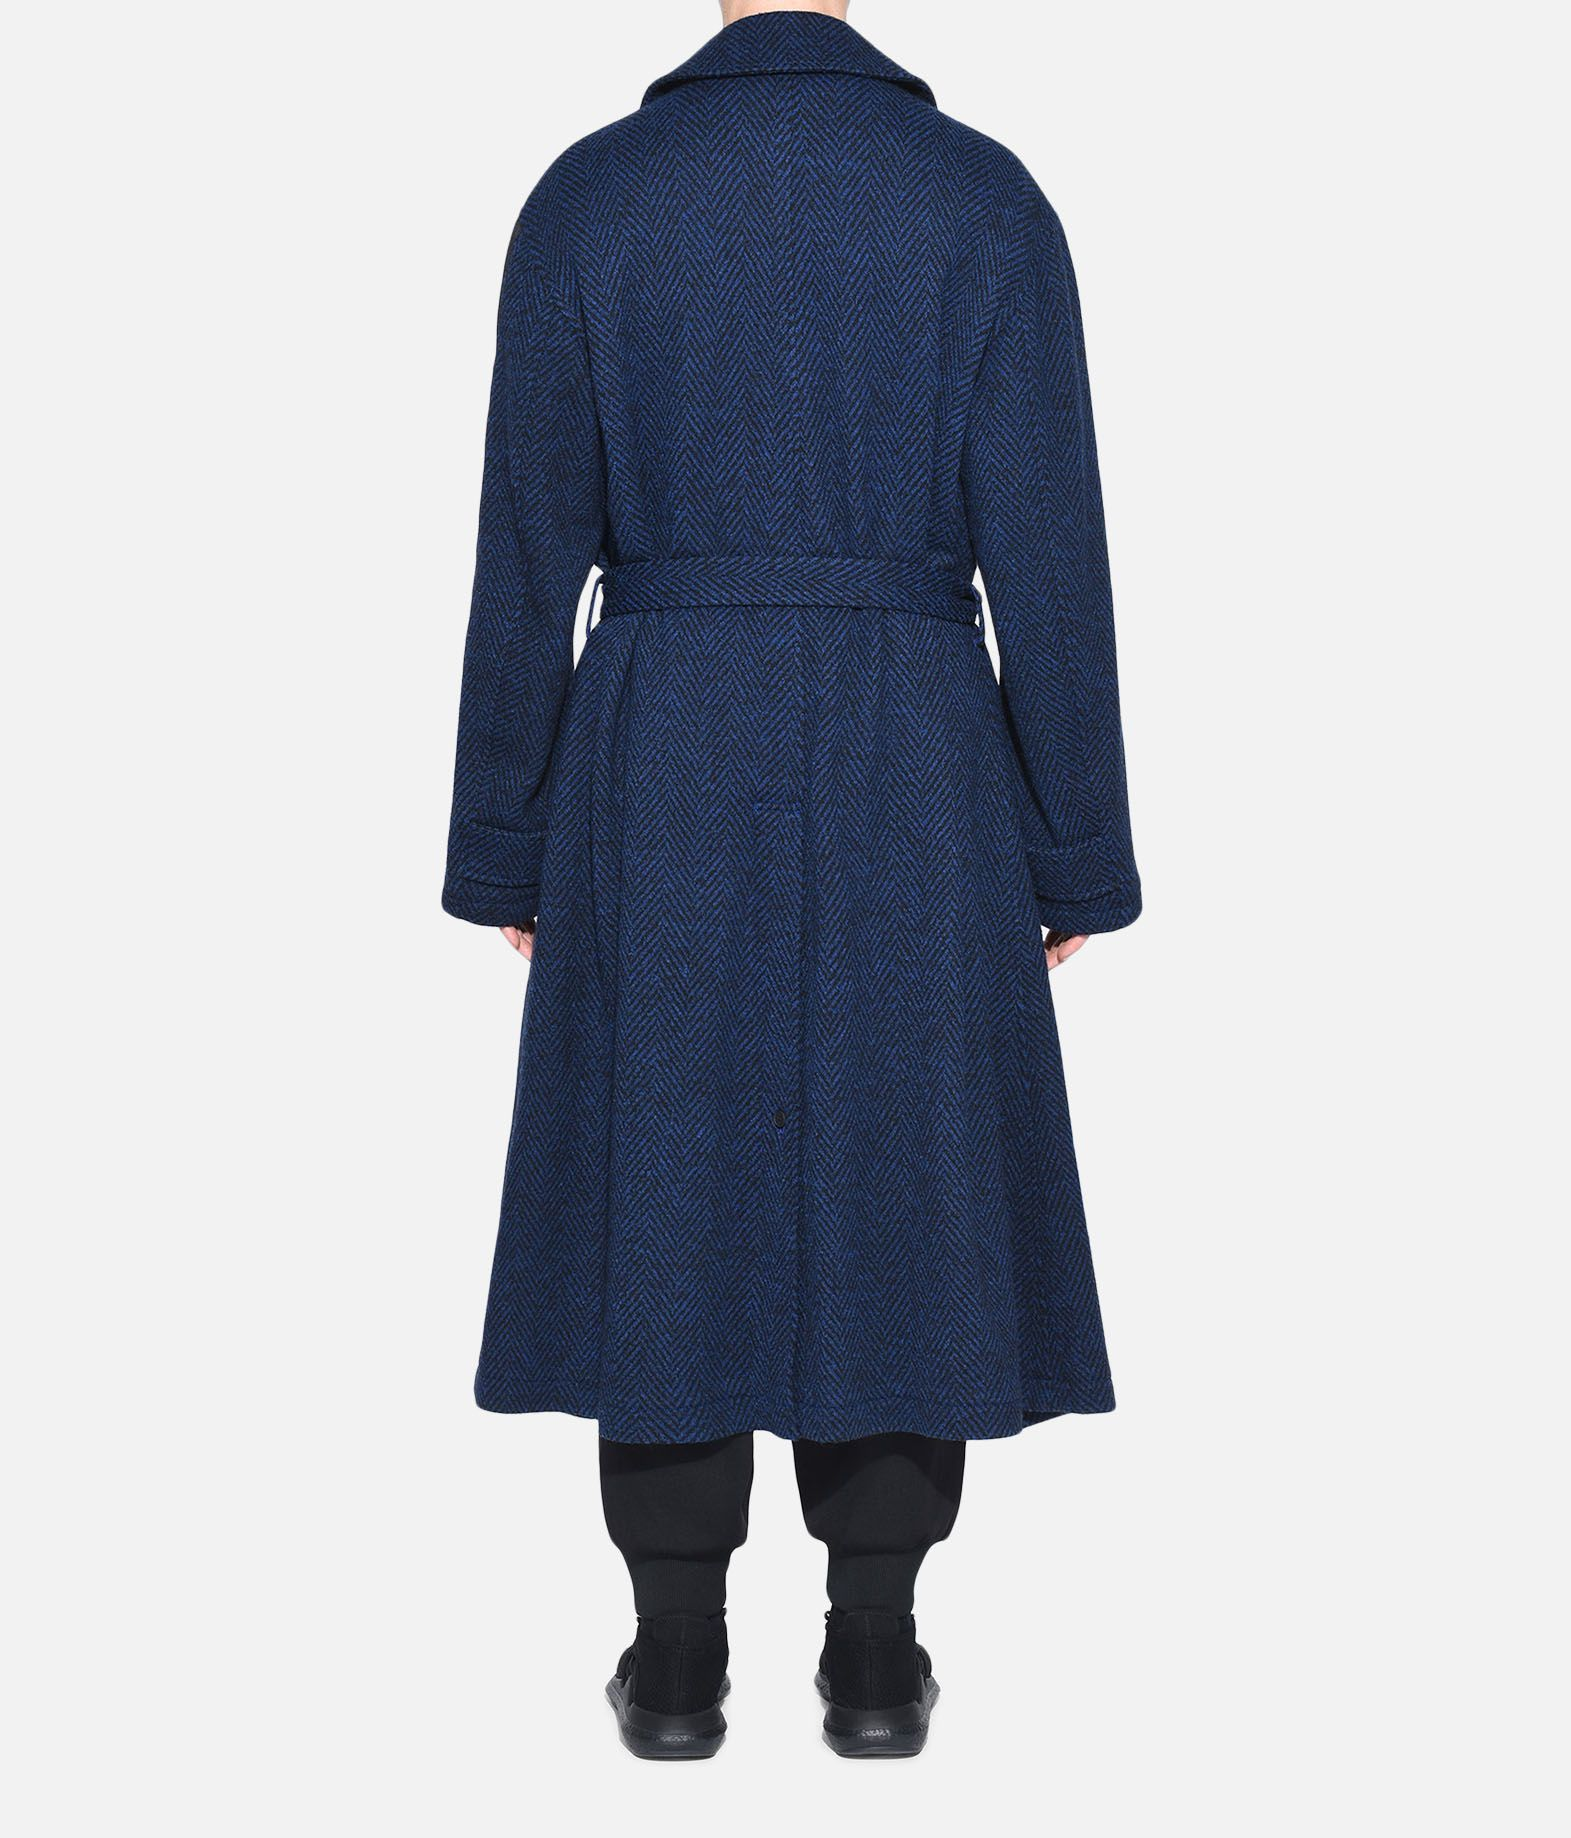 Y-3 Y-3 Tailored Wool Coat コート メンズ d